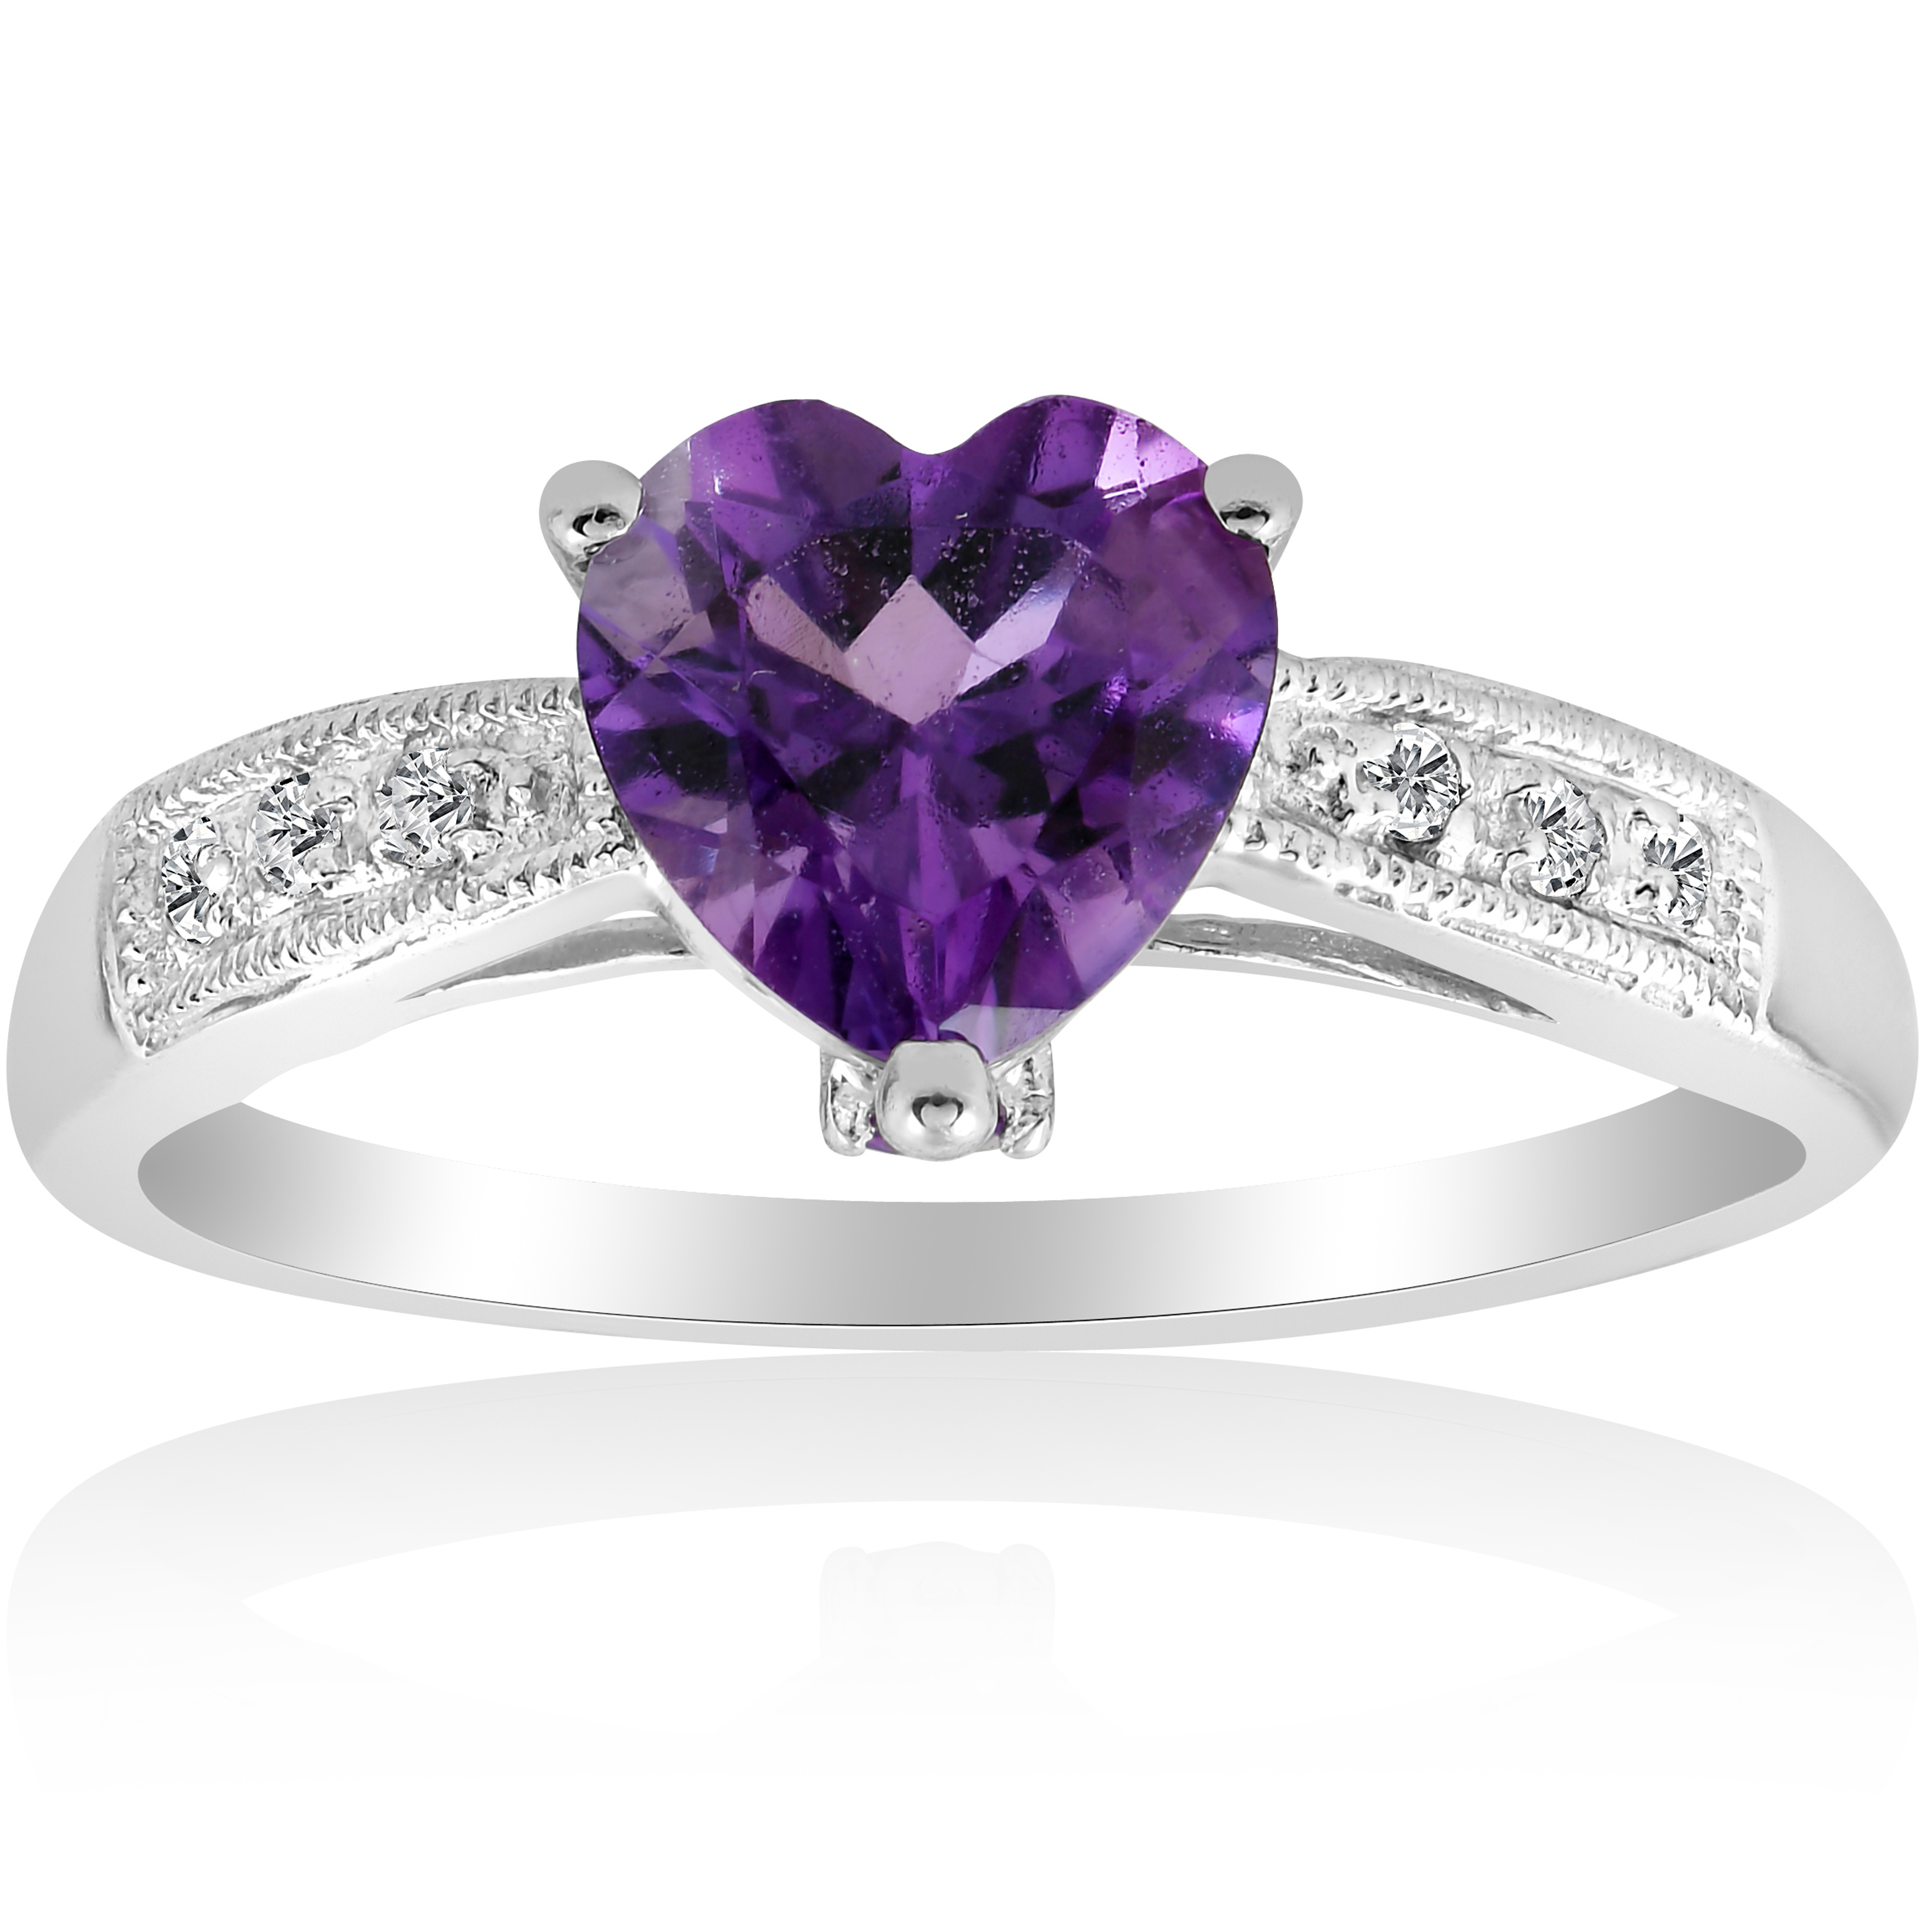 1ct heart shaped amethyst diamond ring 10k white gold ebay. Black Bedroom Furniture Sets. Home Design Ideas